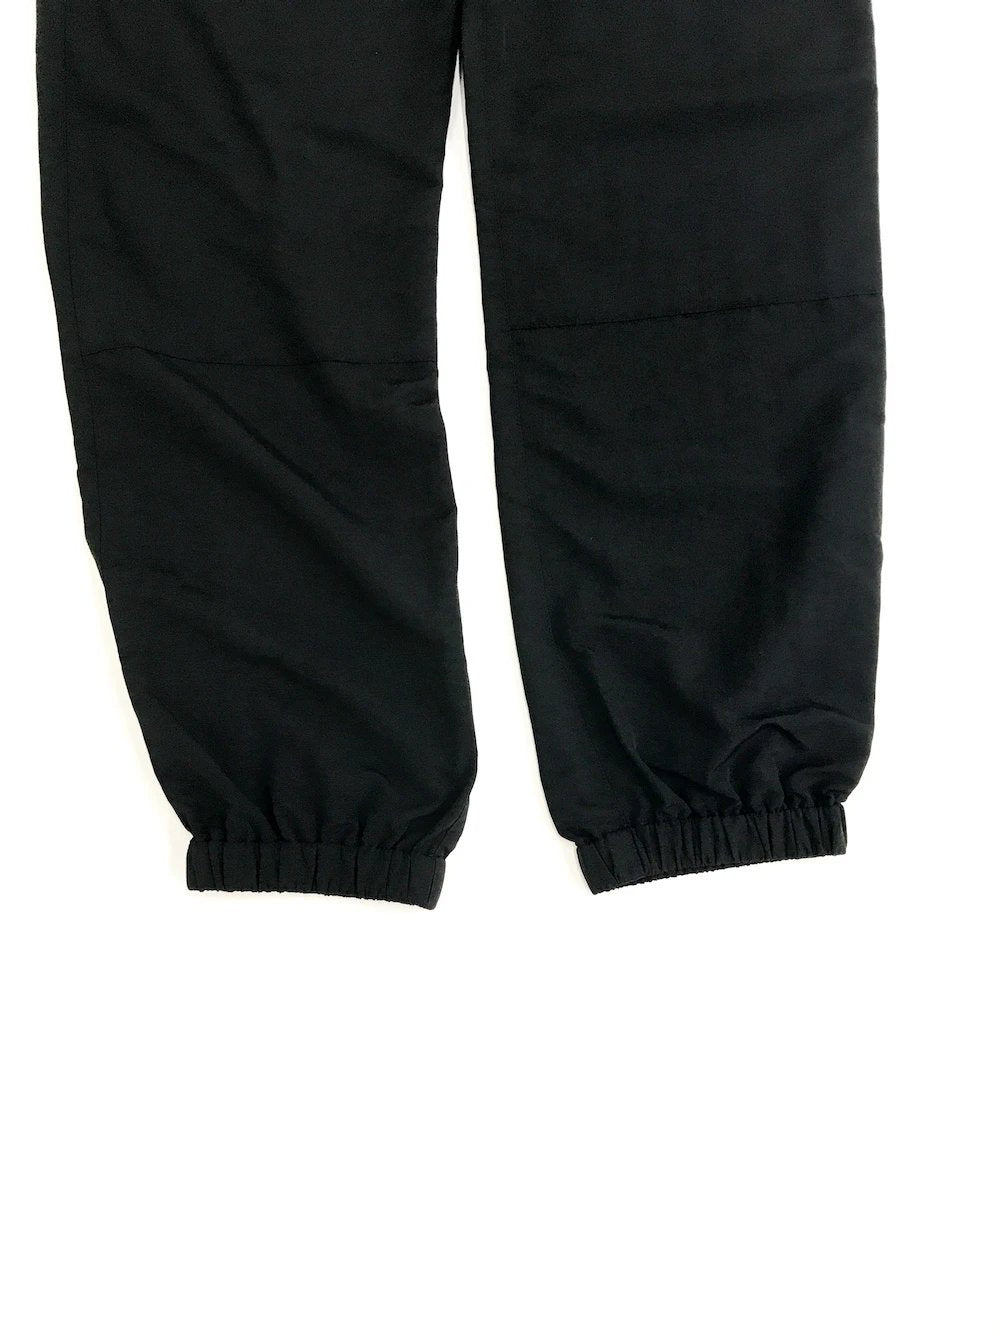 GREI new york (グレイ) / TRACK PANTS 4-PLY DWR FINISH BLACK。リブ画像。